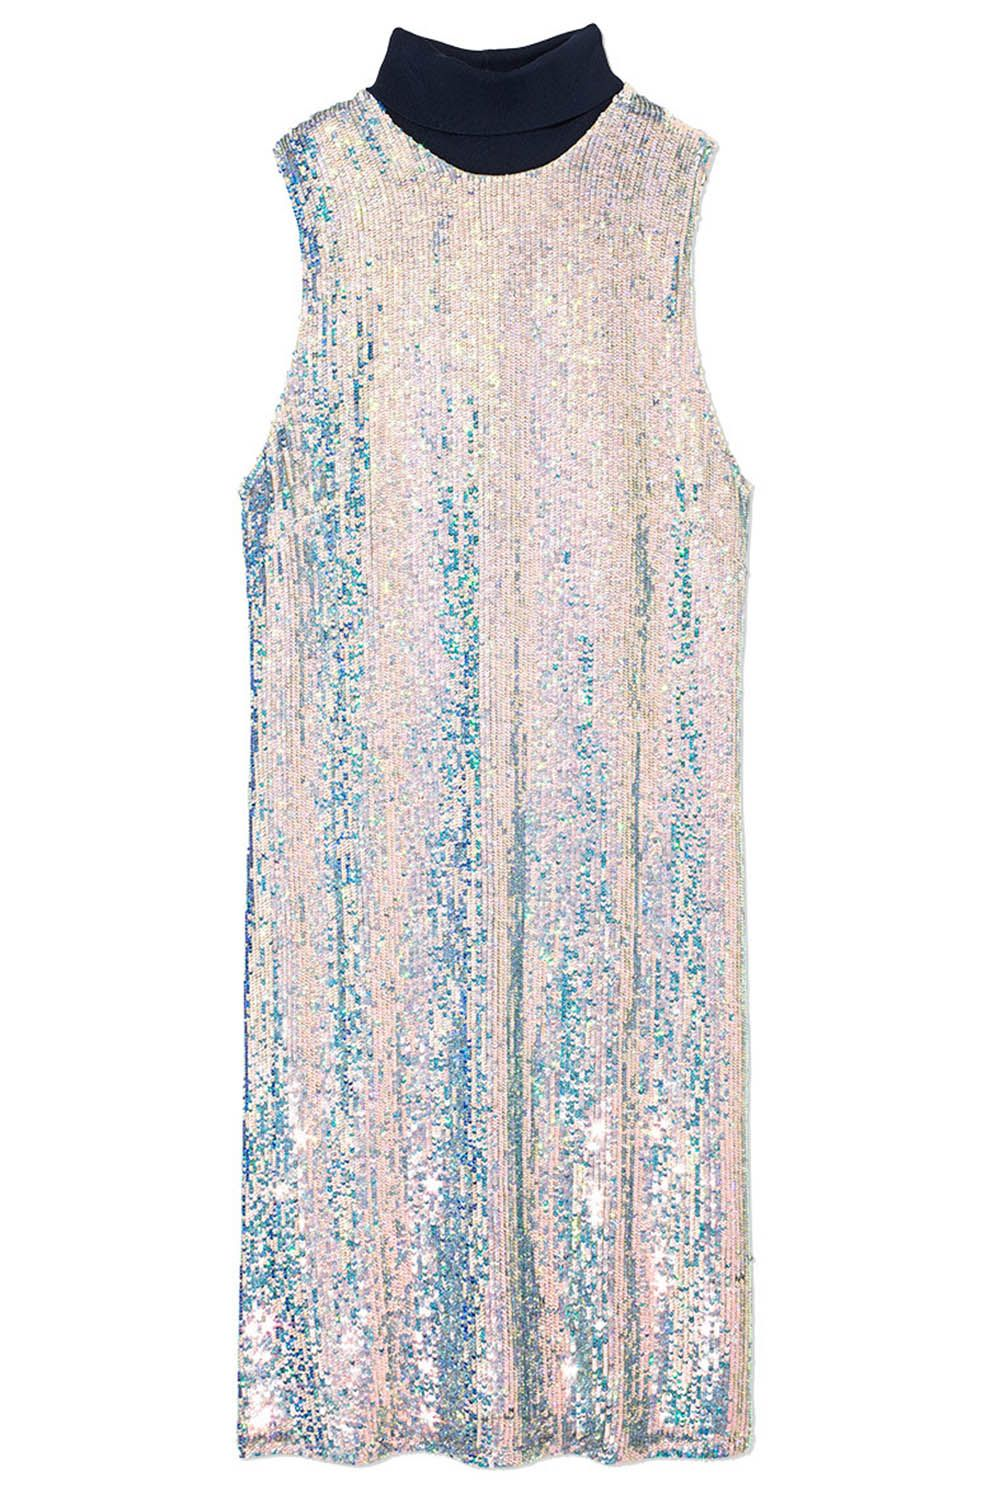 "<p>When the dress-code reads ""sparkles"" this sequin number is what you want. <br></p><p><em data-redactor-tag=""em"" data-verified=""redactor"">3.1 Phillip Lim dress, $1,195, <strong data-redactor-tag=""strong"" data-verified=""redactor""><a href=""https://shop.harpersbazaar.com/0-9/31-phillip-lim/sleeveless-sequin-dress-10465.html"" target=""_blank"" data-tracking-id=""recirc-text-link"">shopBAZAAR.com</a></strong>. </em></p>"